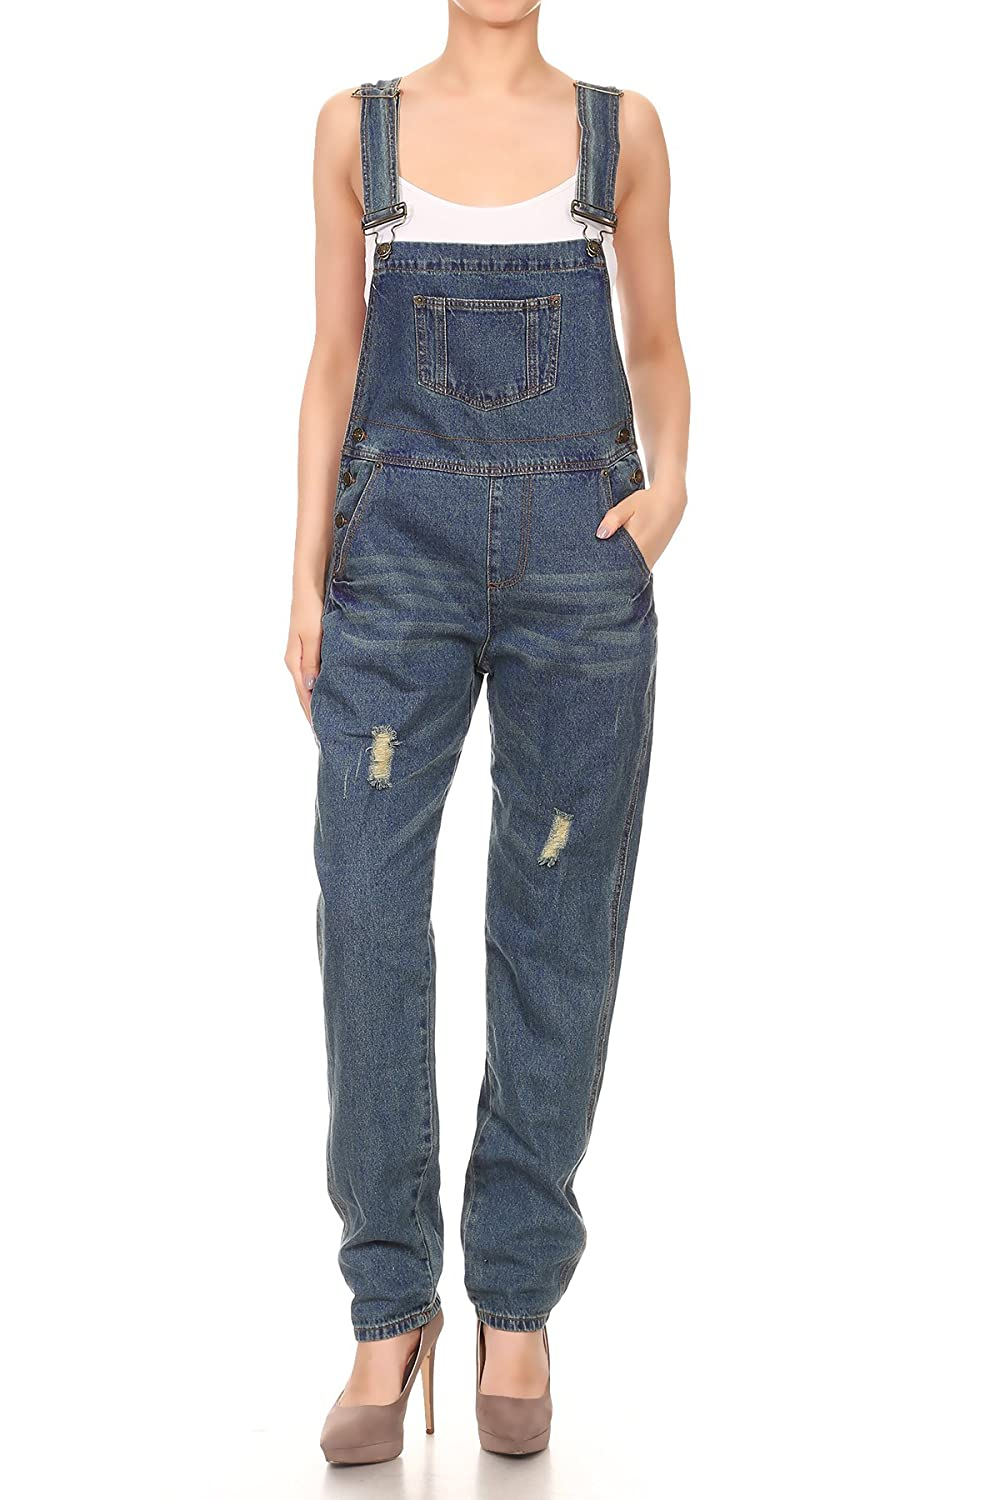 850b99a5c2 Amazon.com: Anna-Kaci Womens Distressed Denim Overalls with Tapered Leg and  Pockets: Clothing